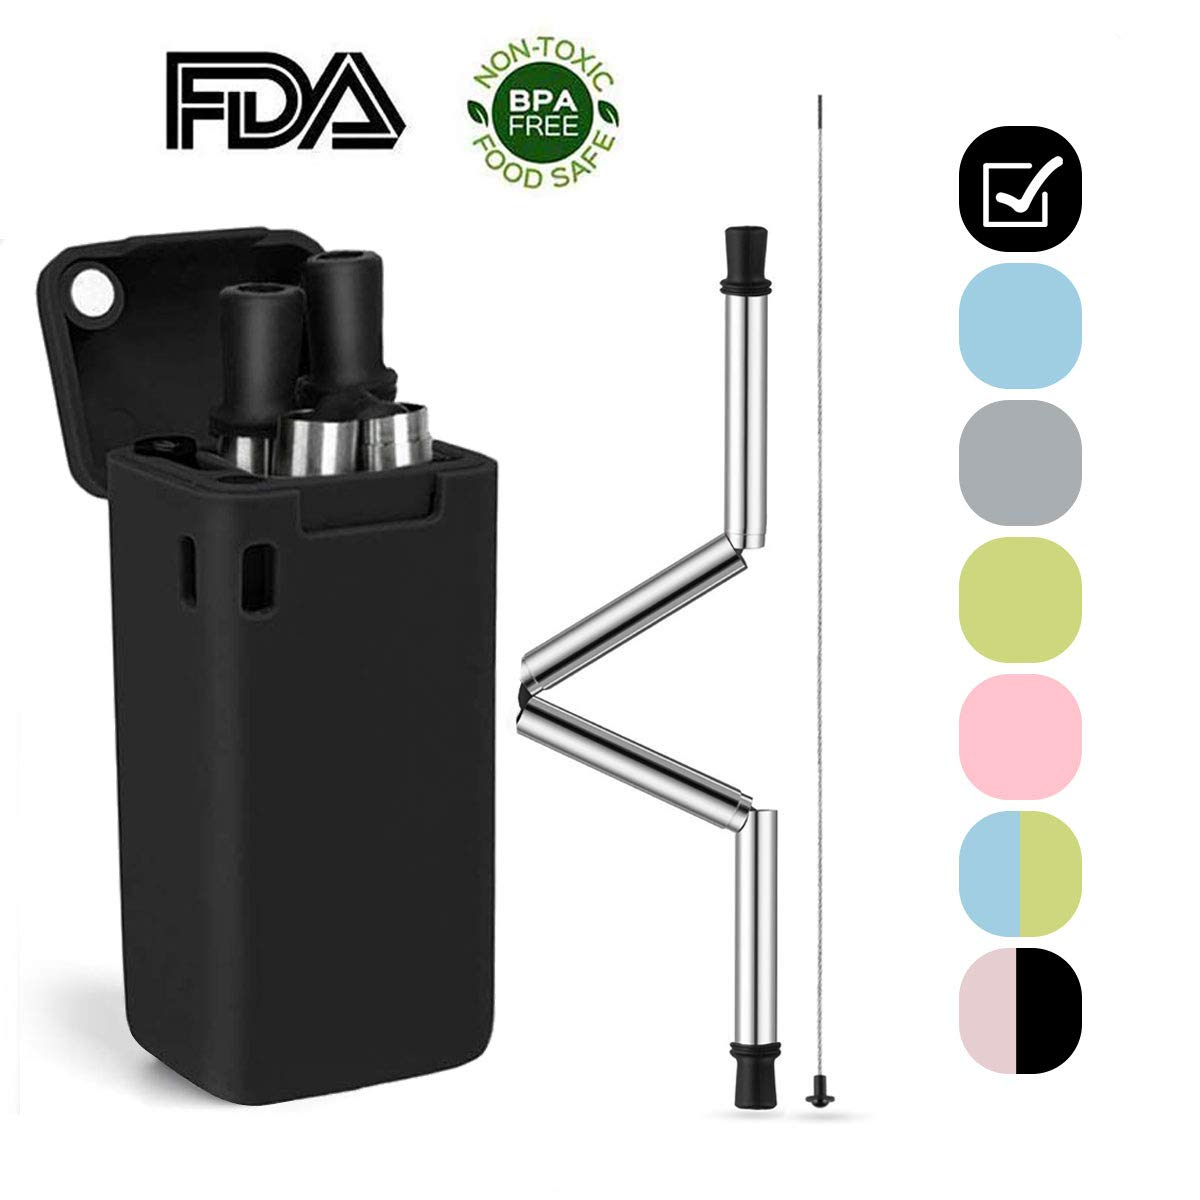 Reusable Stainless Steel Drinking Folding Straws with Cleaning Brush Portable Collapsible Straws Black